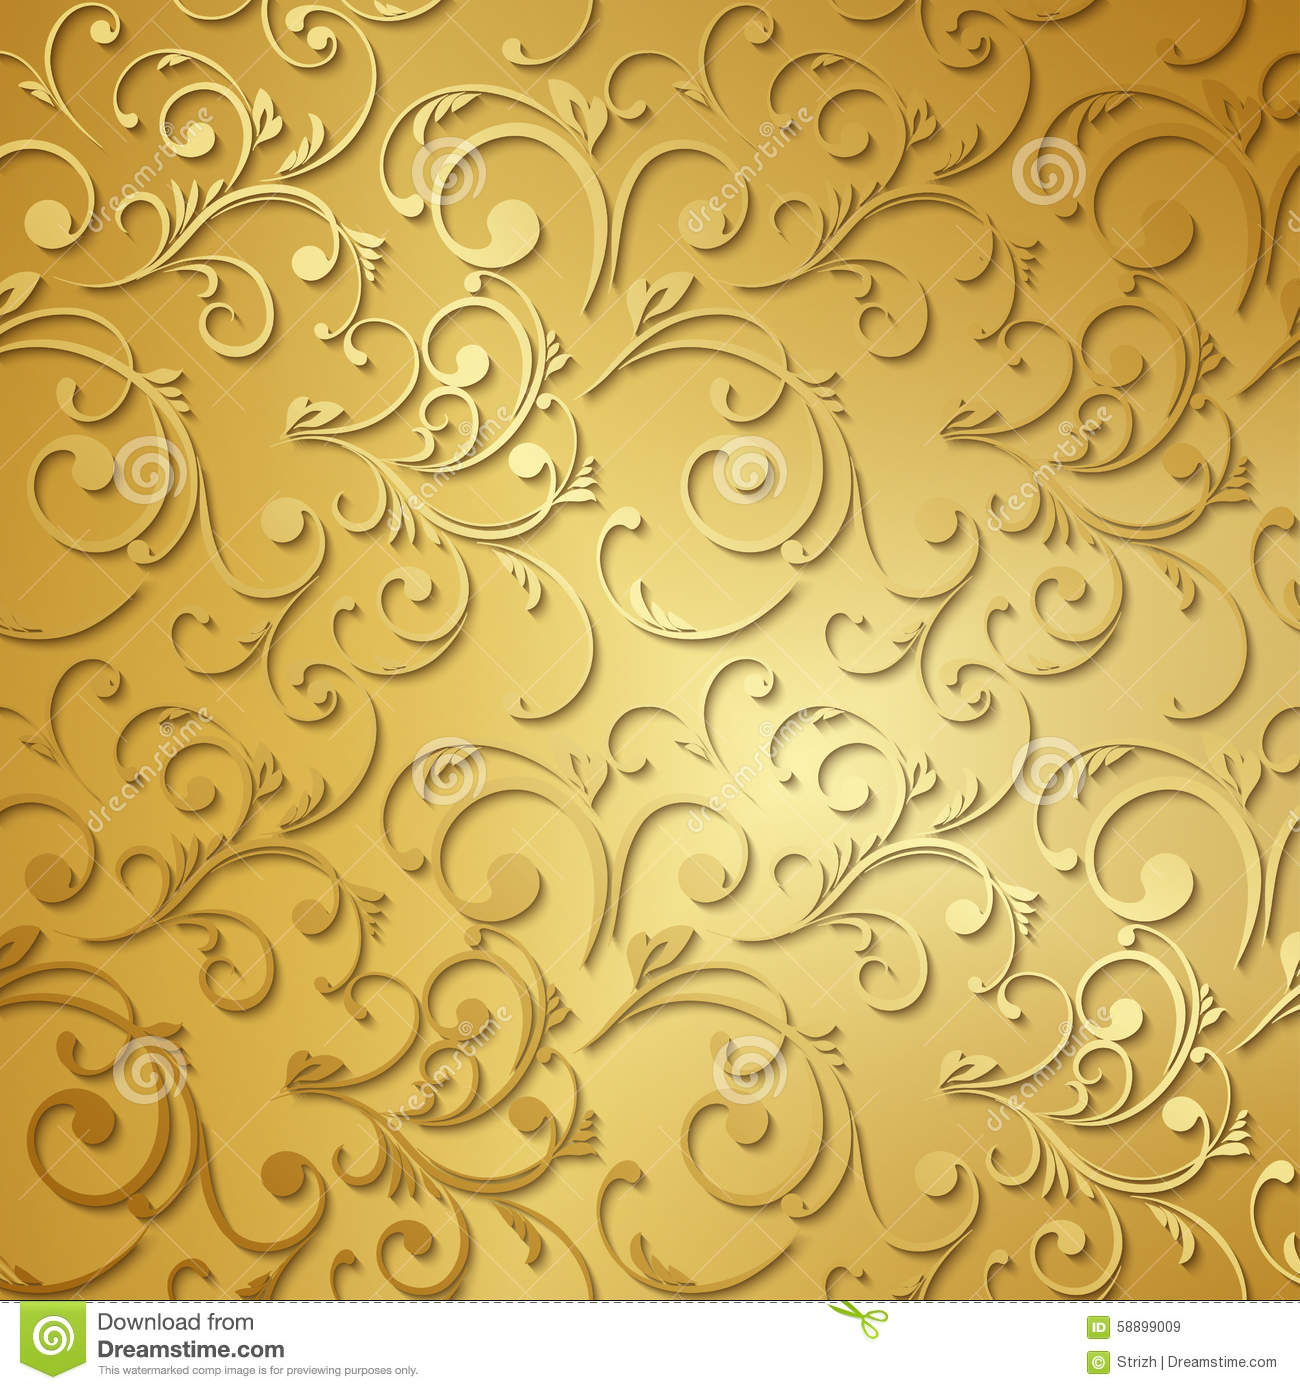 Golden Design Wallpaper : Stock photos and royalty free images from rf